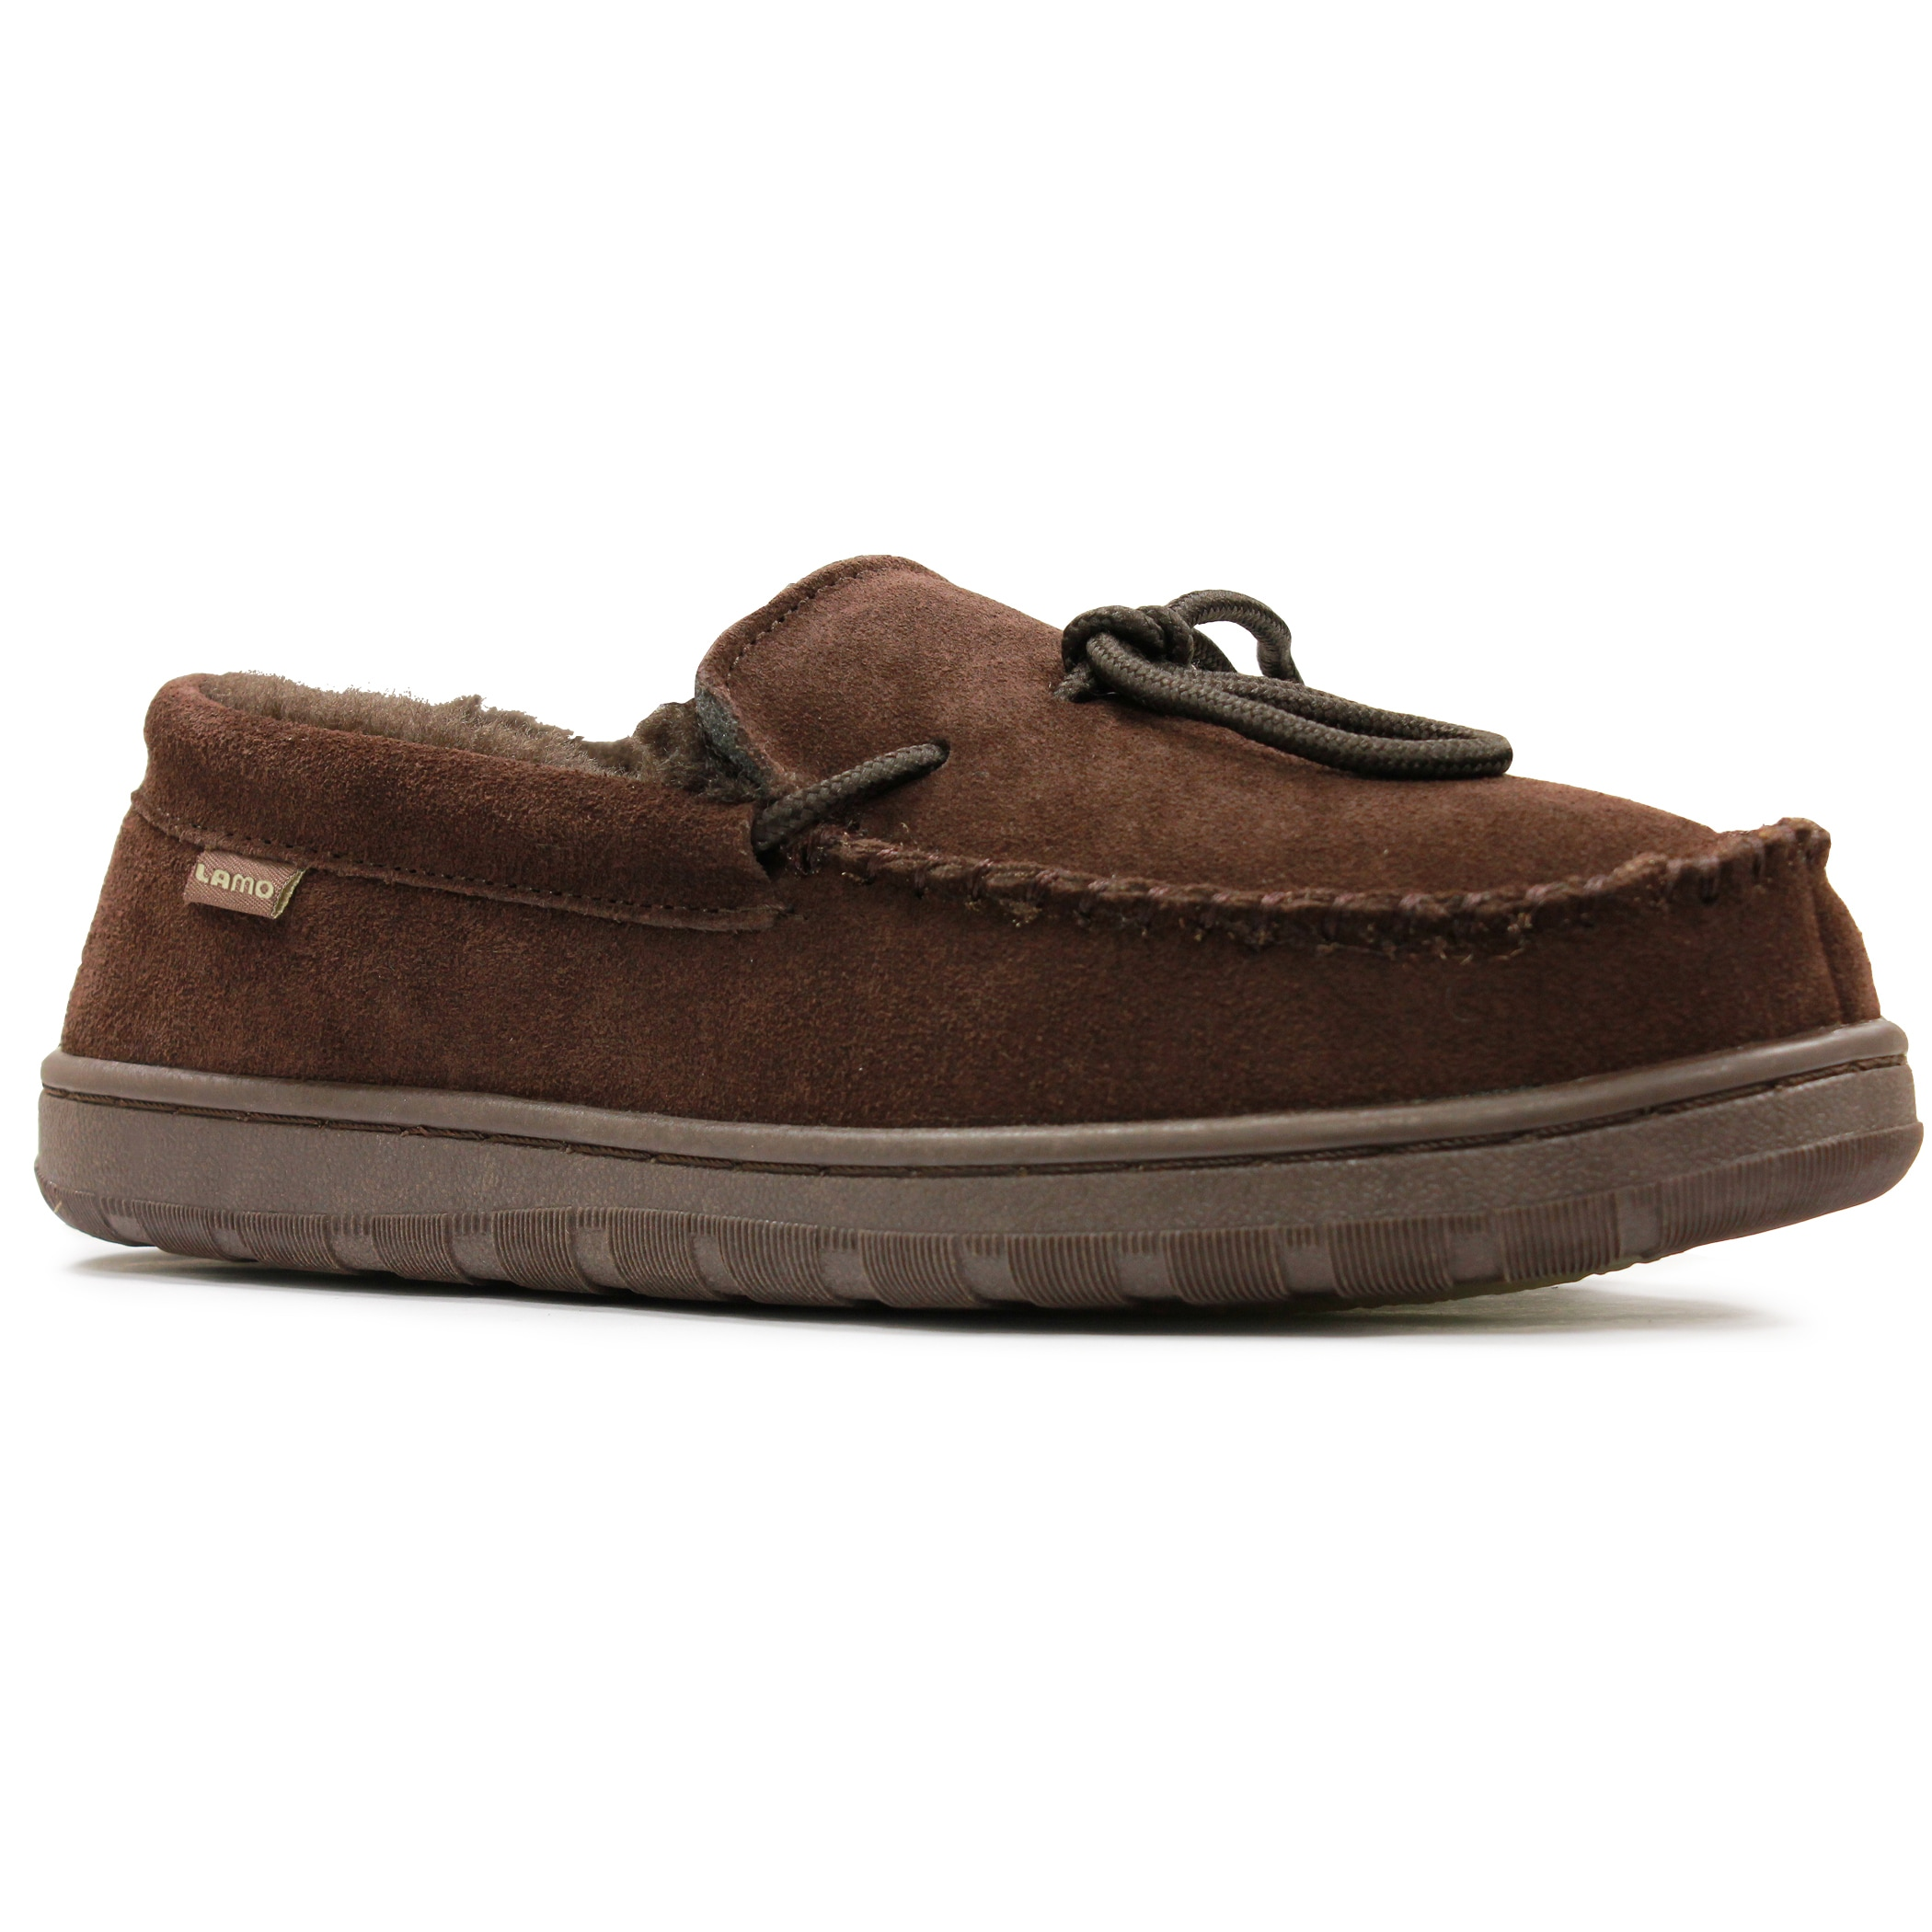 Lamo Ladies Rubber-soled Moccasin by Overstock